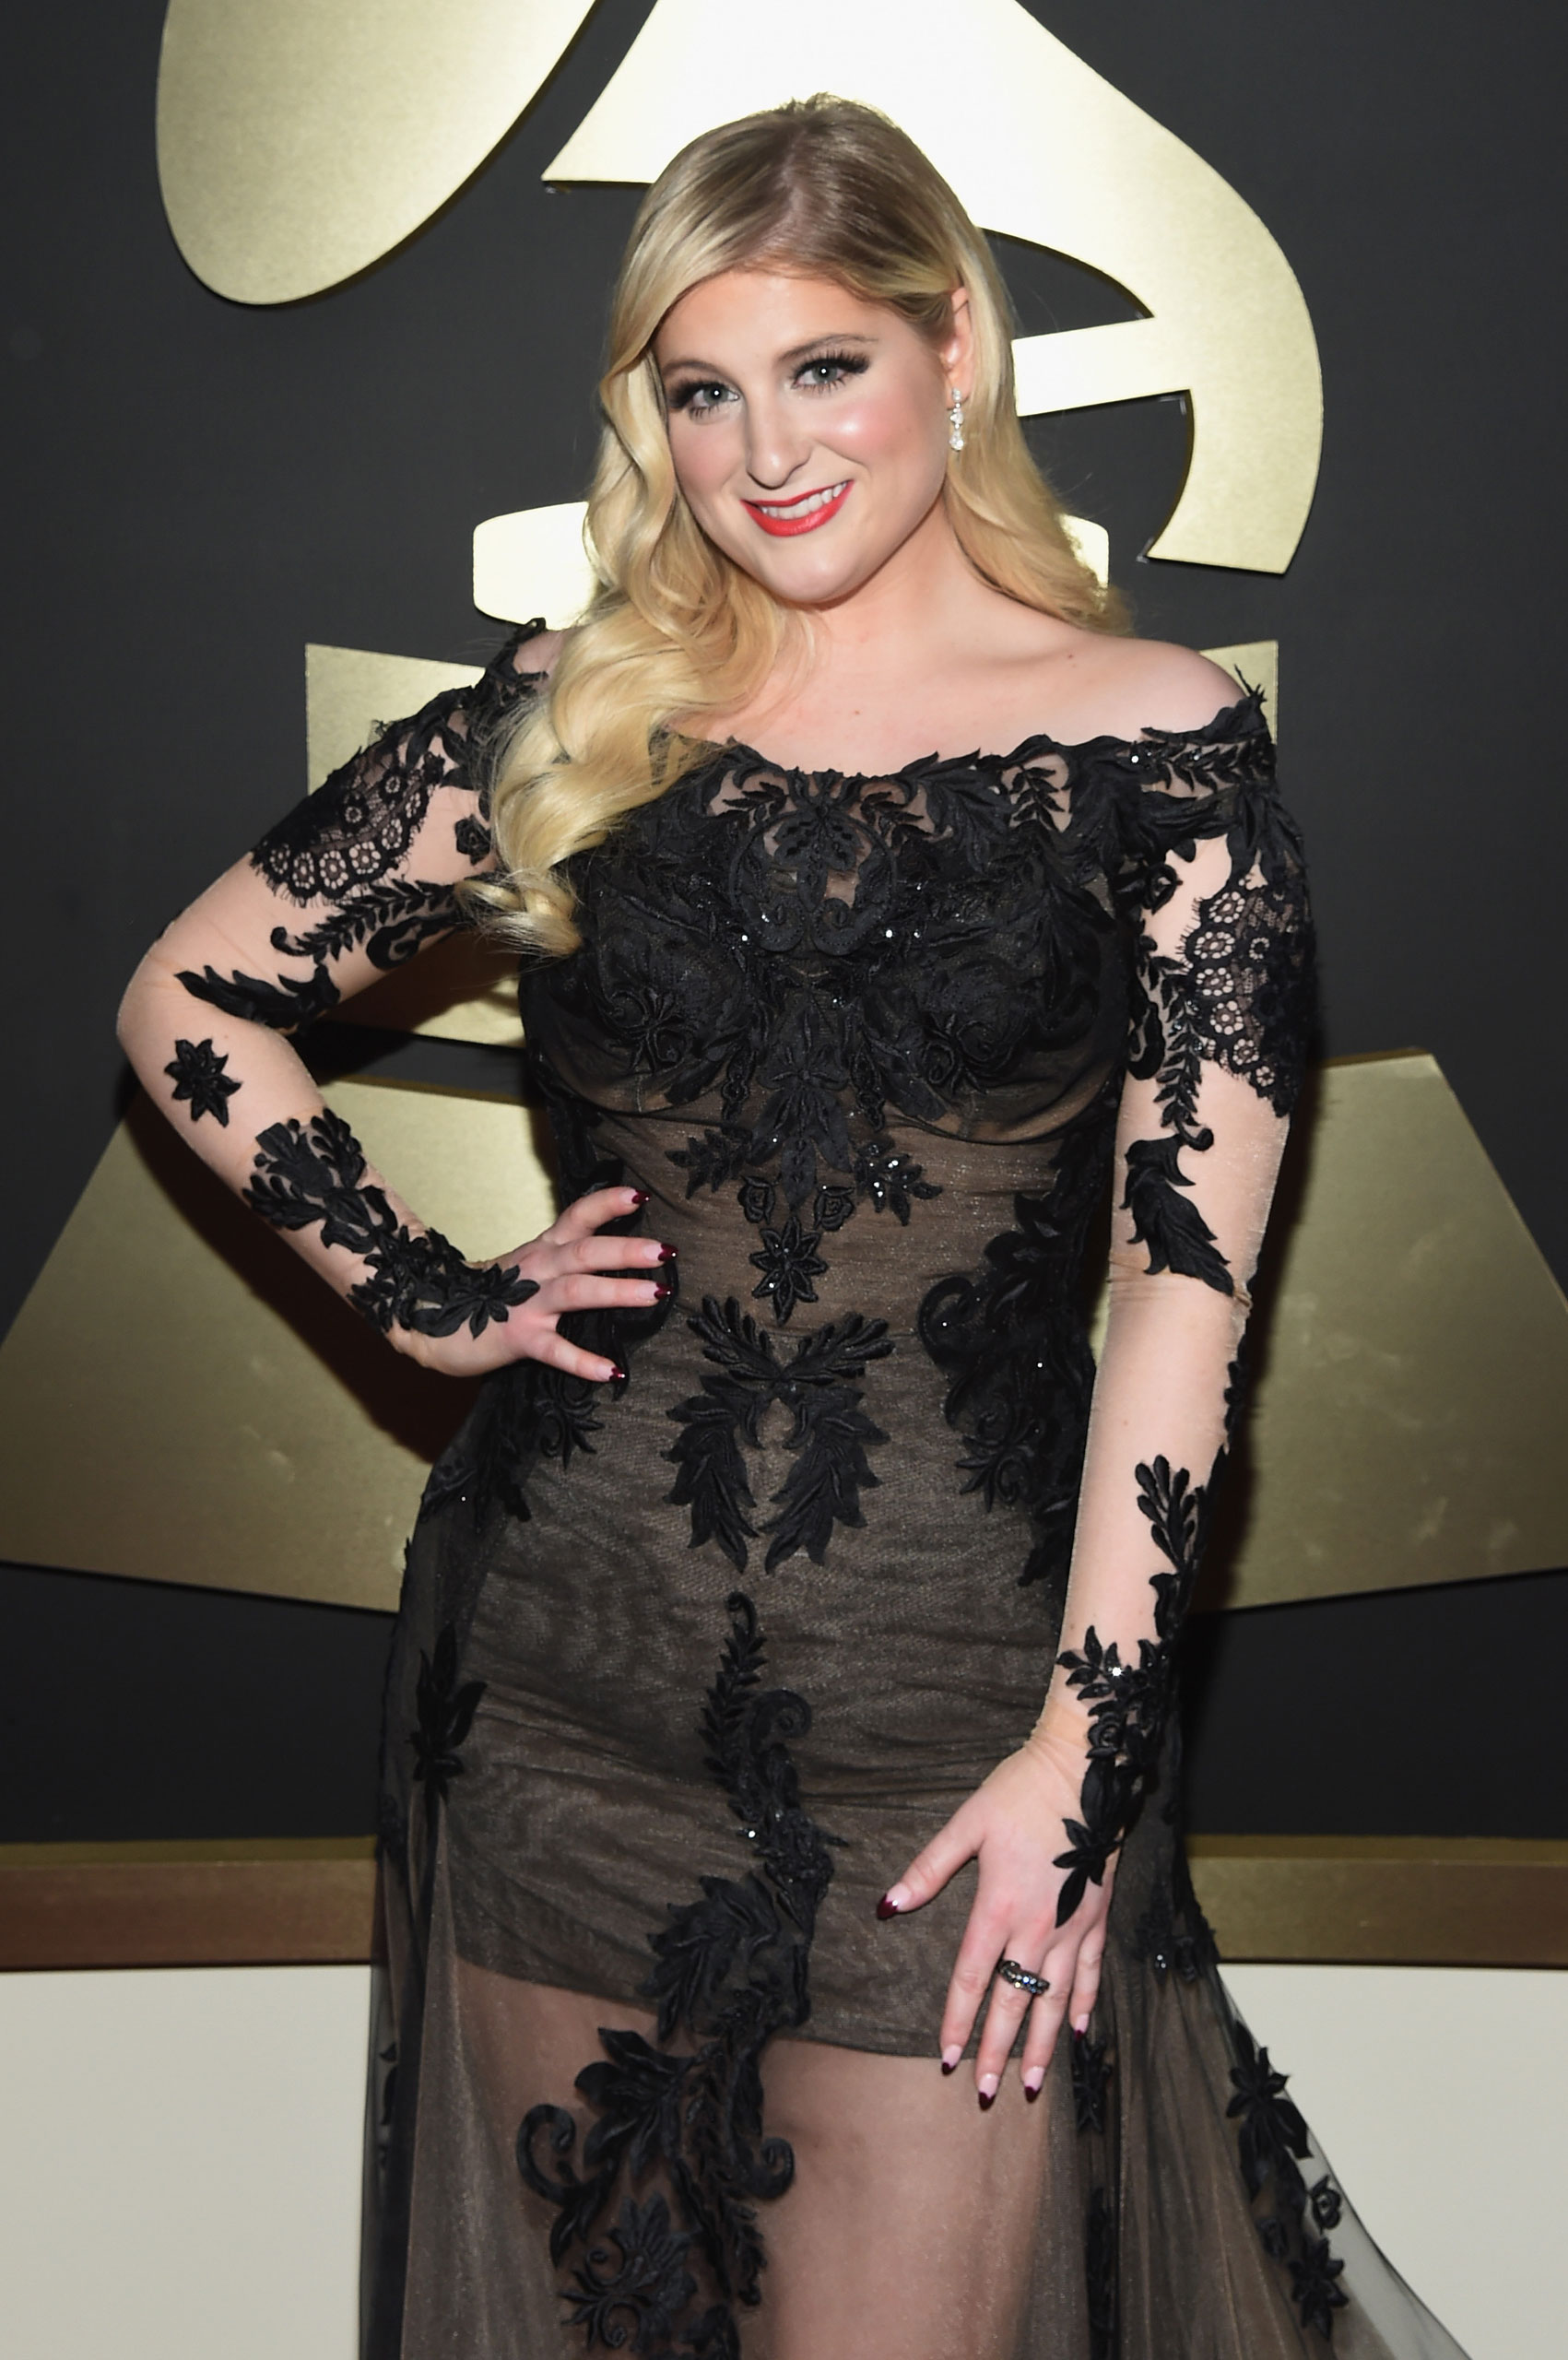 Meghan Trainor attends the 57th Annual Grammy Awards at the Staples Center on Feb. 8, 2015 in Los Angeles, Calif.